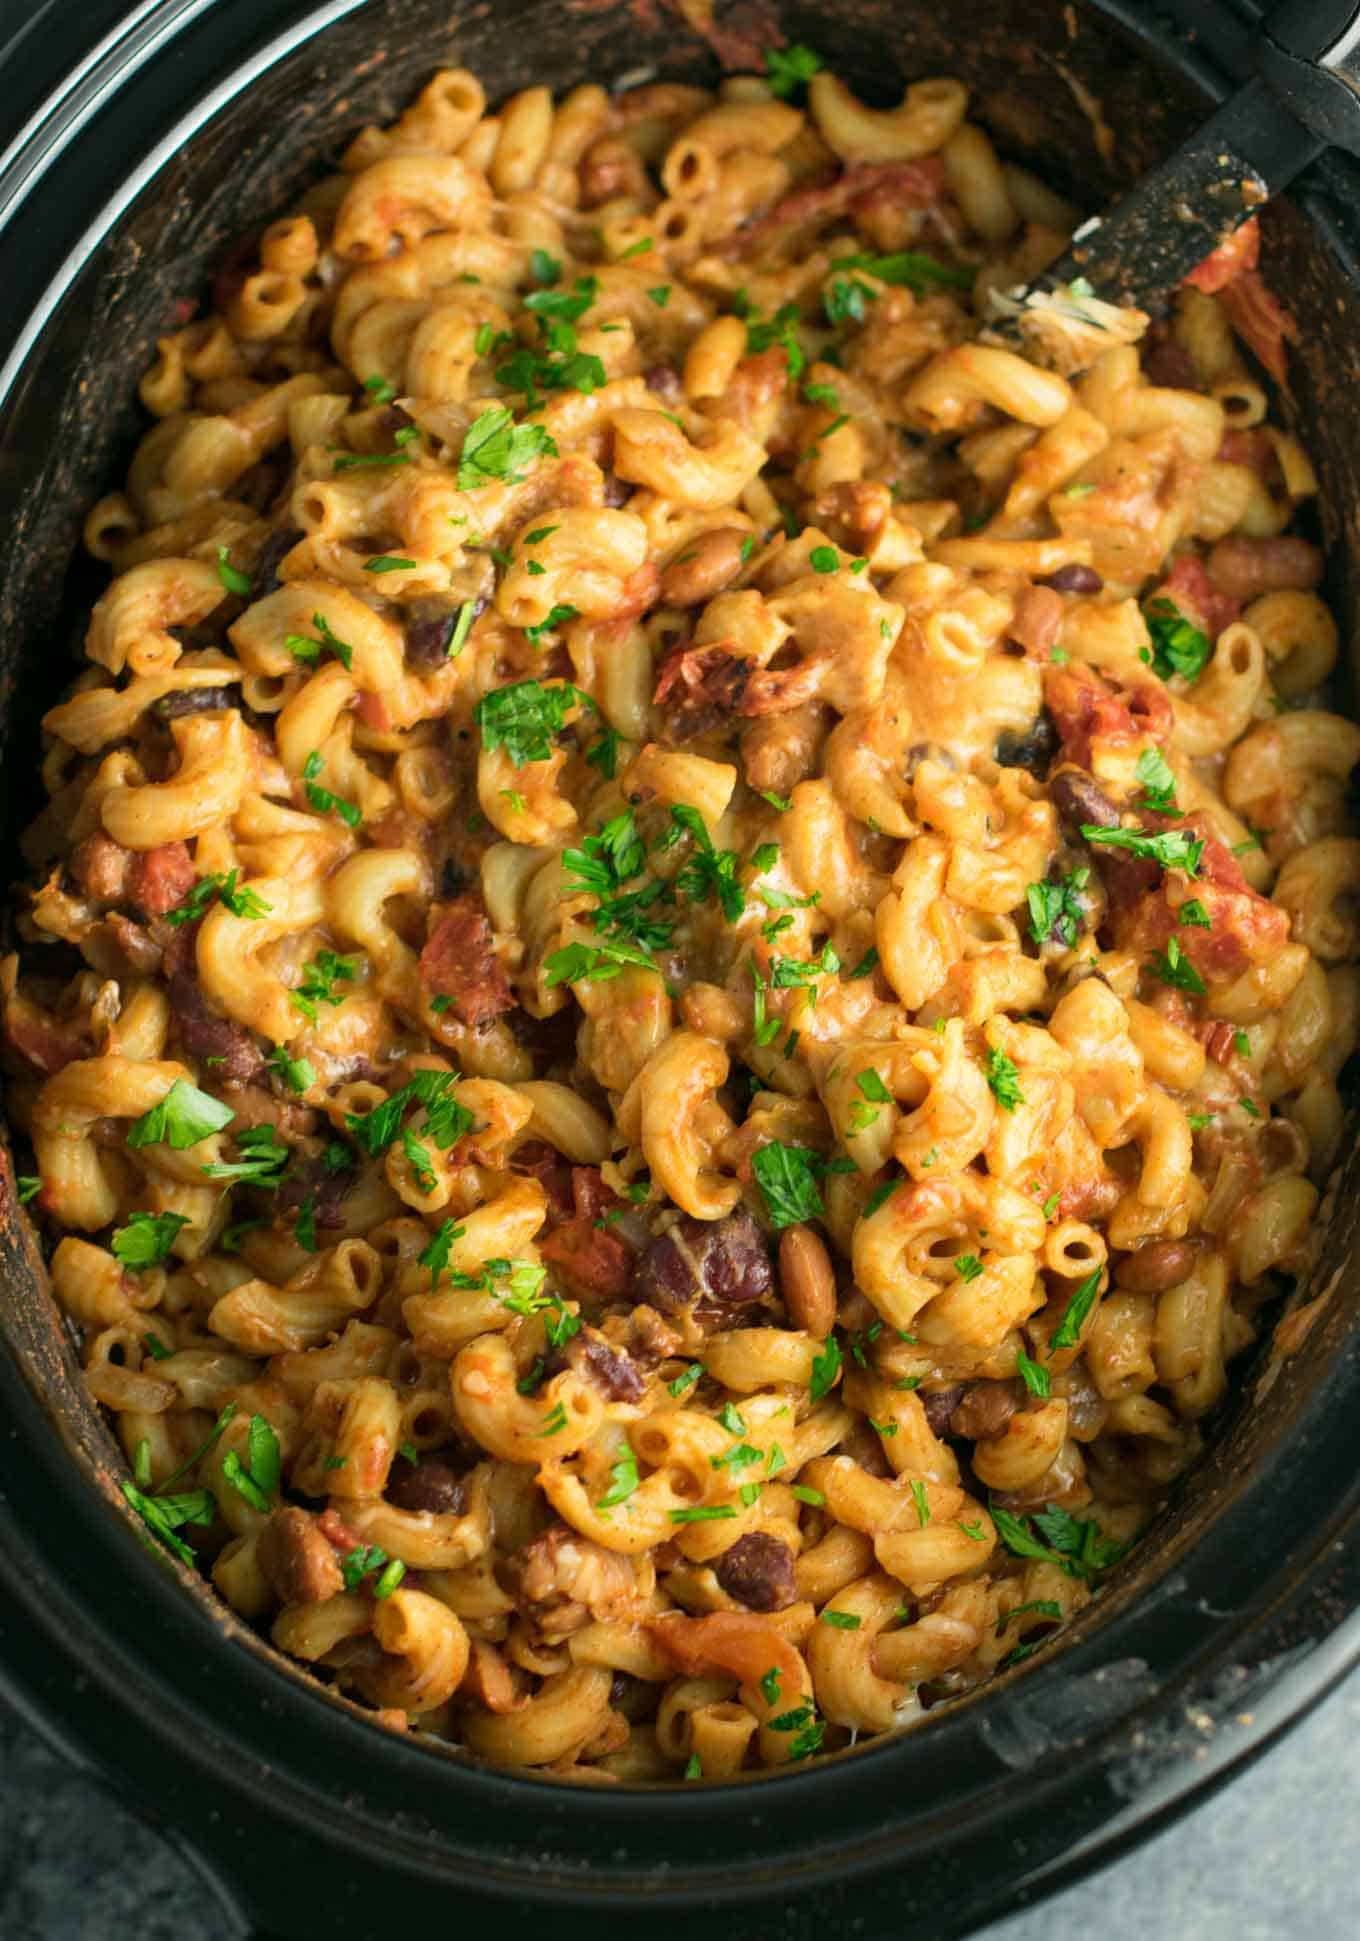 This Slow Cooker Vegetarian Chili Mac Recipe is made all in the crockpot (even the noodles!). A super easy vegetarian crockpot recipe to feed a crowd. #vegetarian #slowcooker #crockpot #chilimac